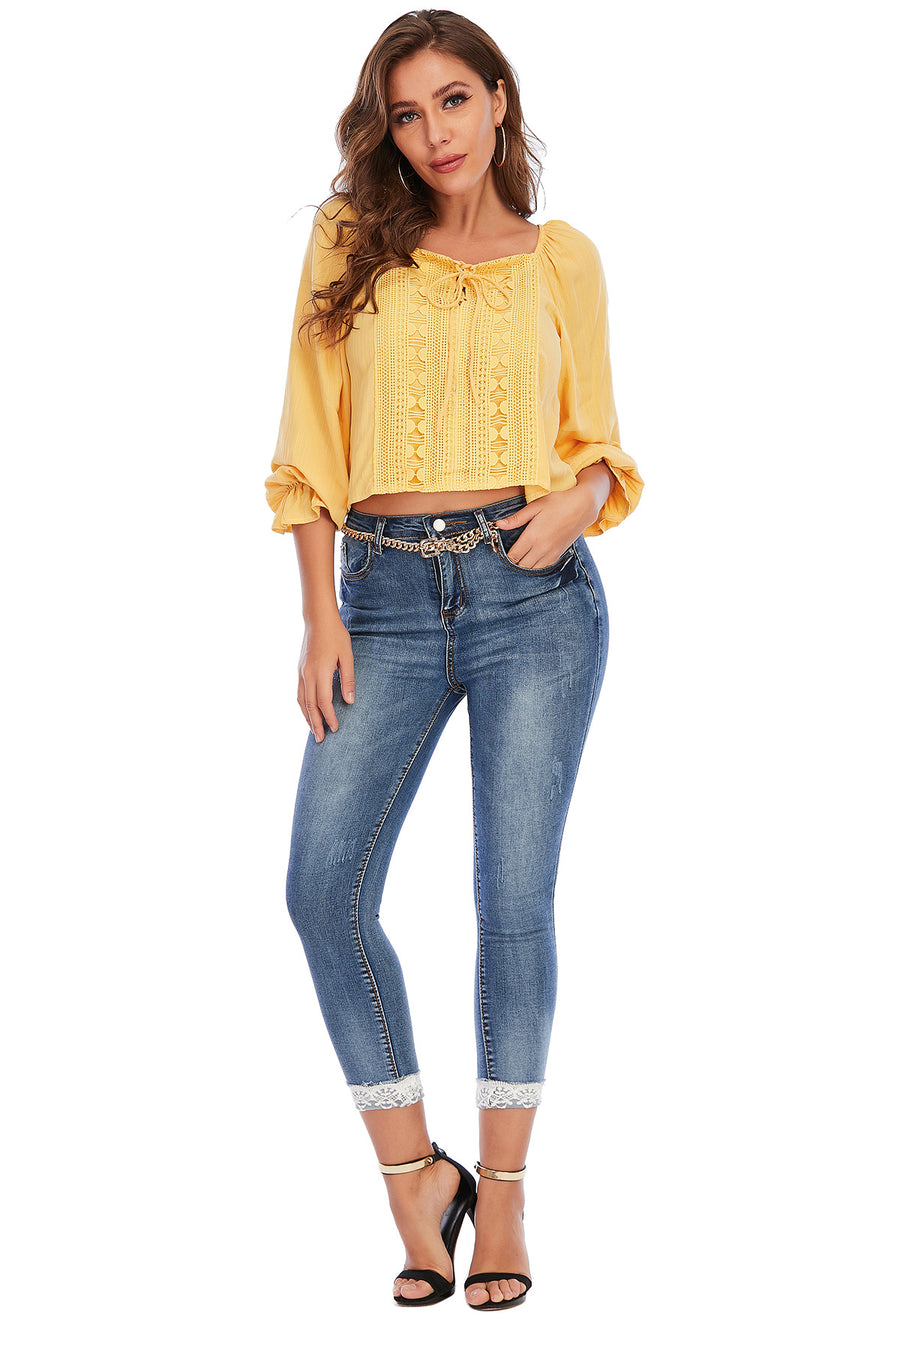 Mantra Pakistan YELLOW LACE UP TOP | Western Wear